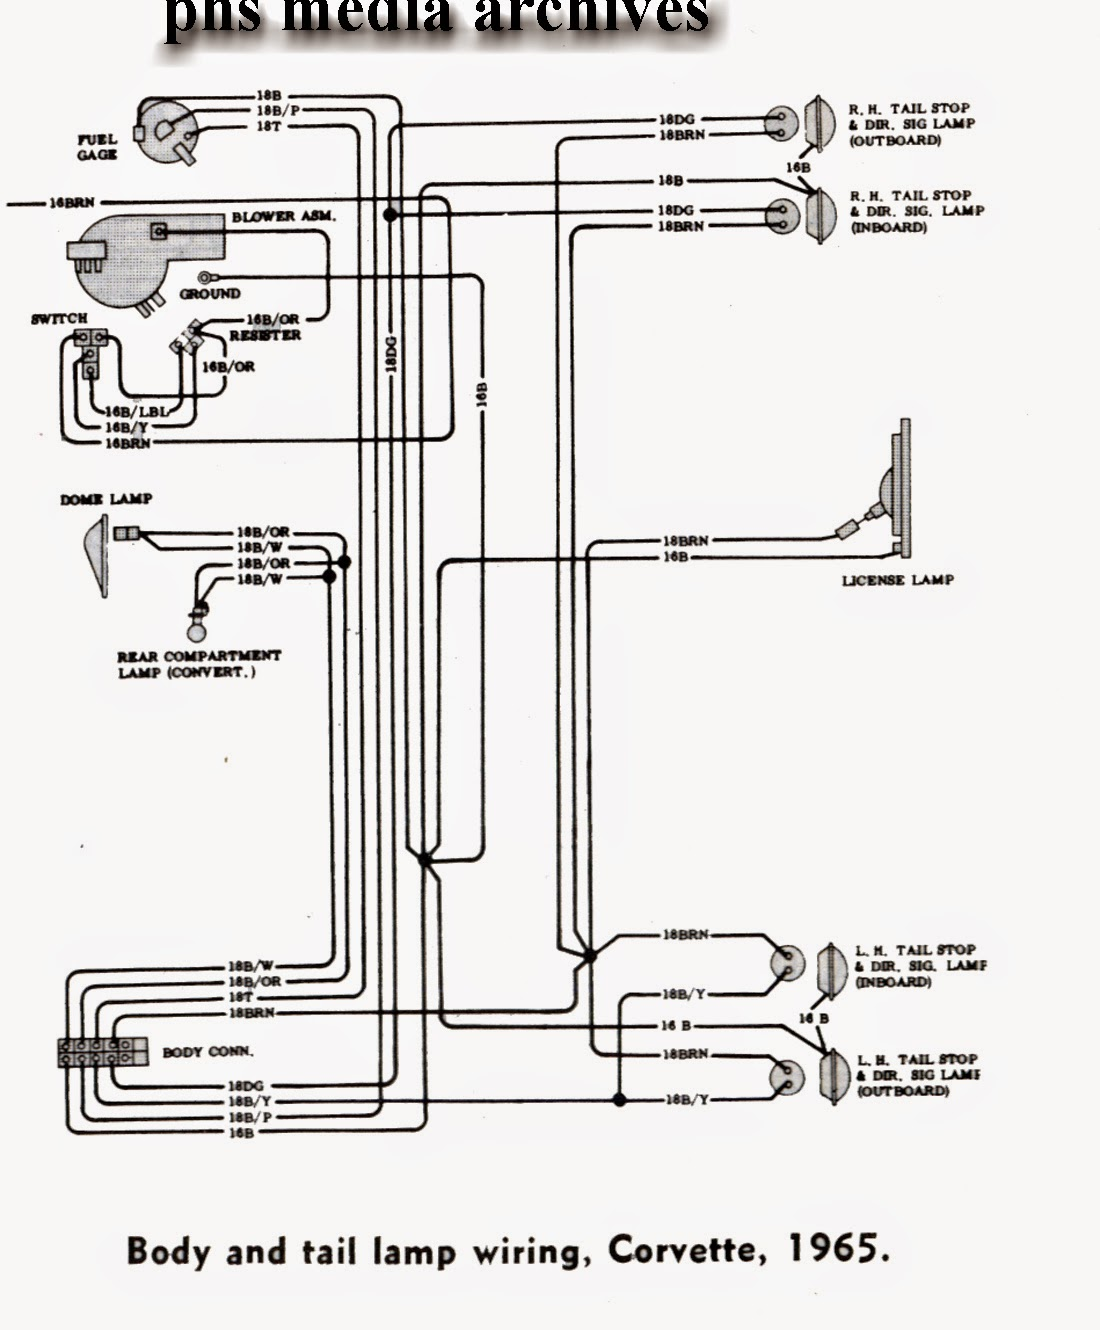 1965 Corvette Wiring Diagram Impala Ac Tech Series Chevrolet Diagrams Engine Fuse Rh Phscollectorcarworld Blogspot Com Ignition